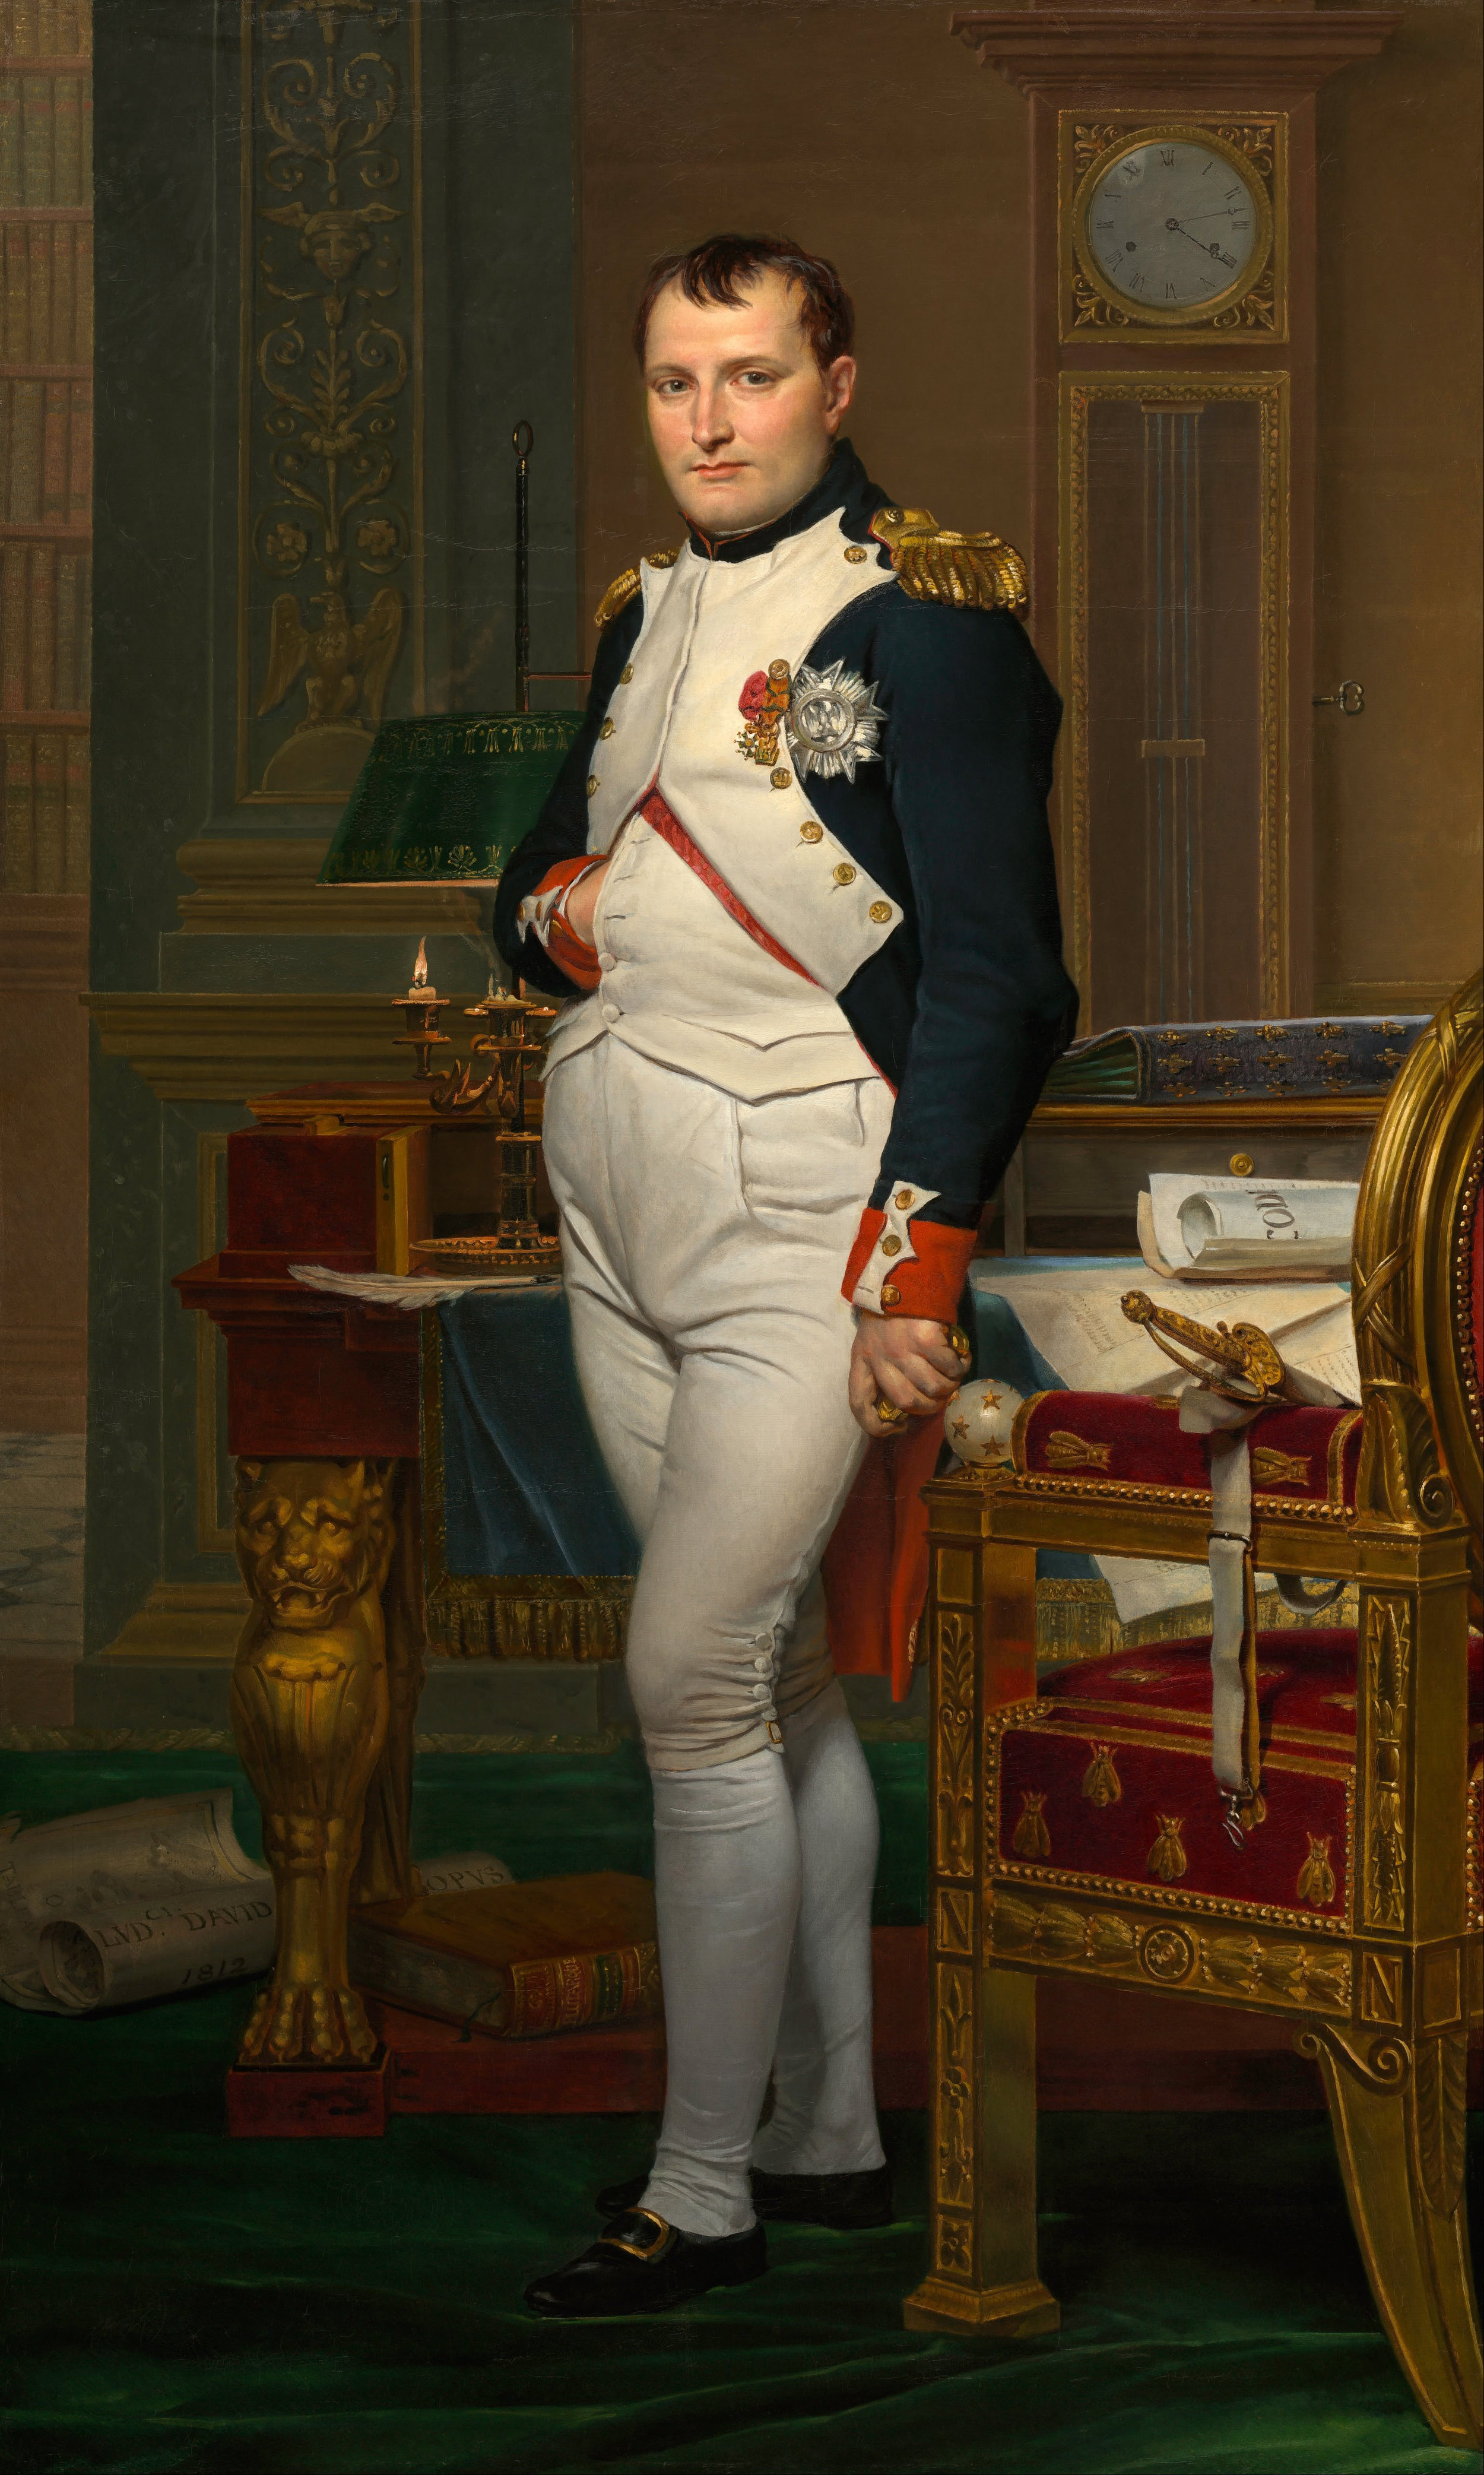 Portrait of Napoleon by Jacques-Louis-David - 'The Emperor Napoleon In His Study At the Tuileries' (wikipedia--accessed 5/27/18 at 6:47am)